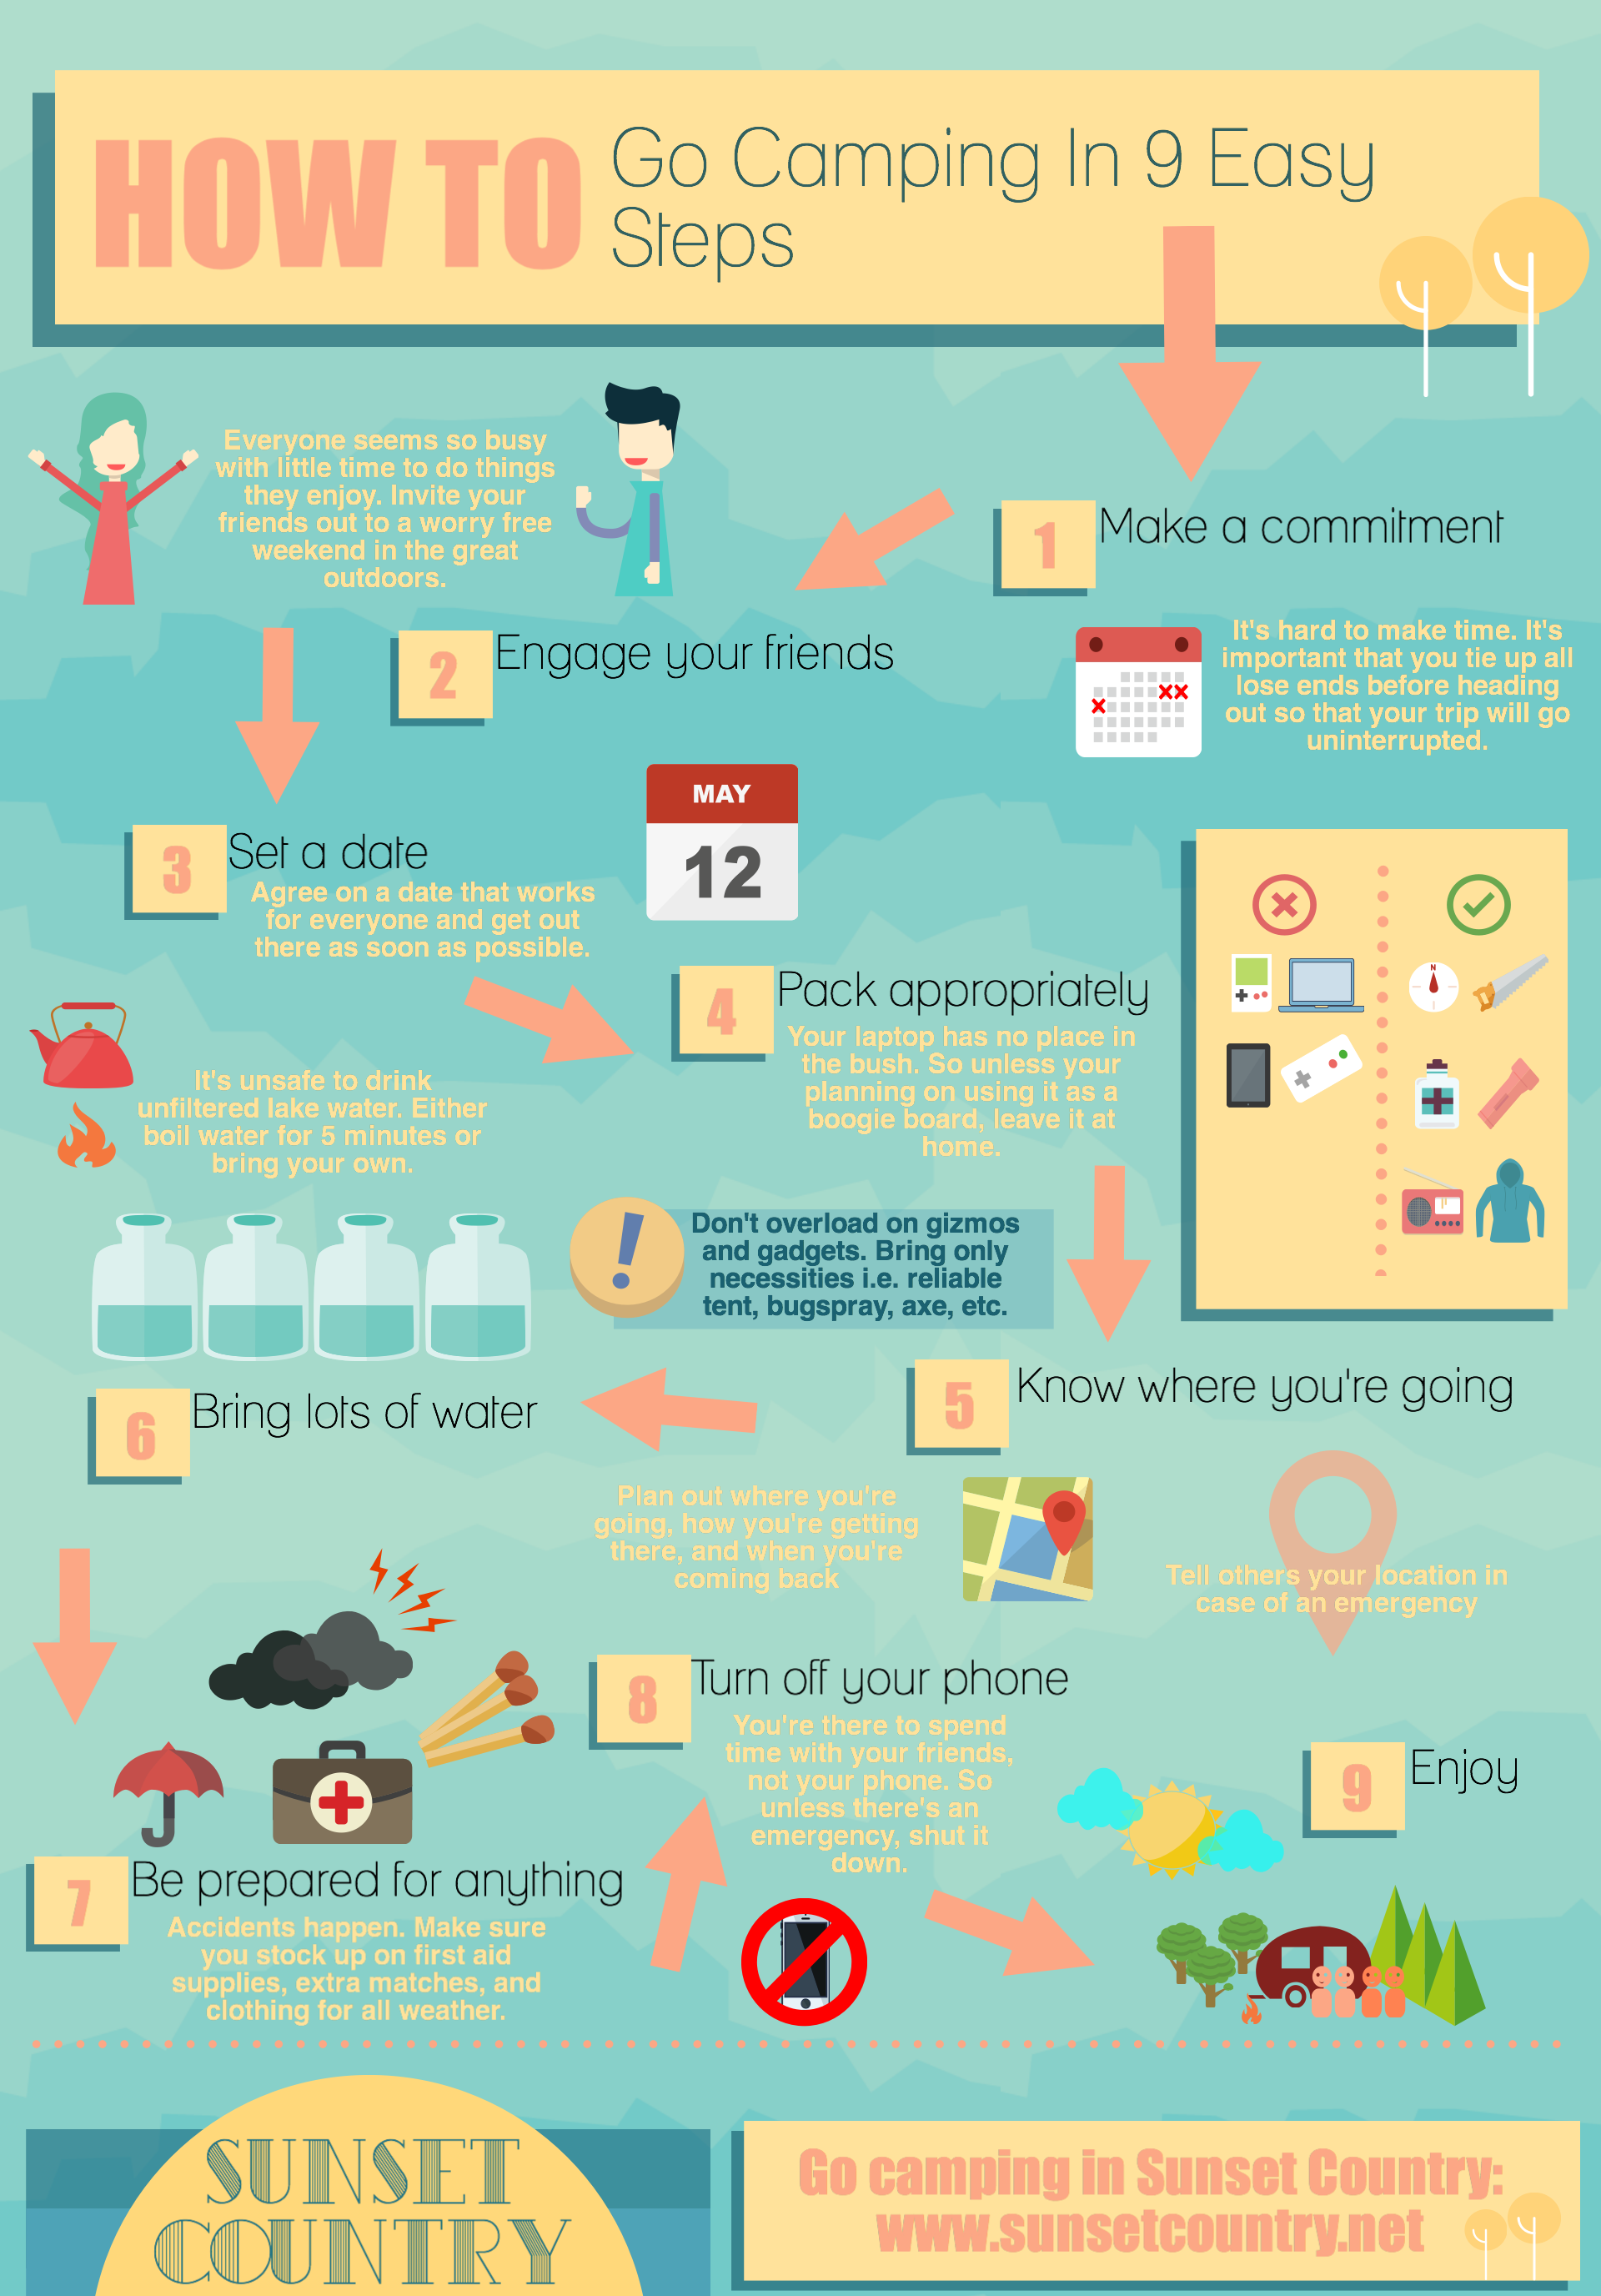 Steps to get ready for a camping trip